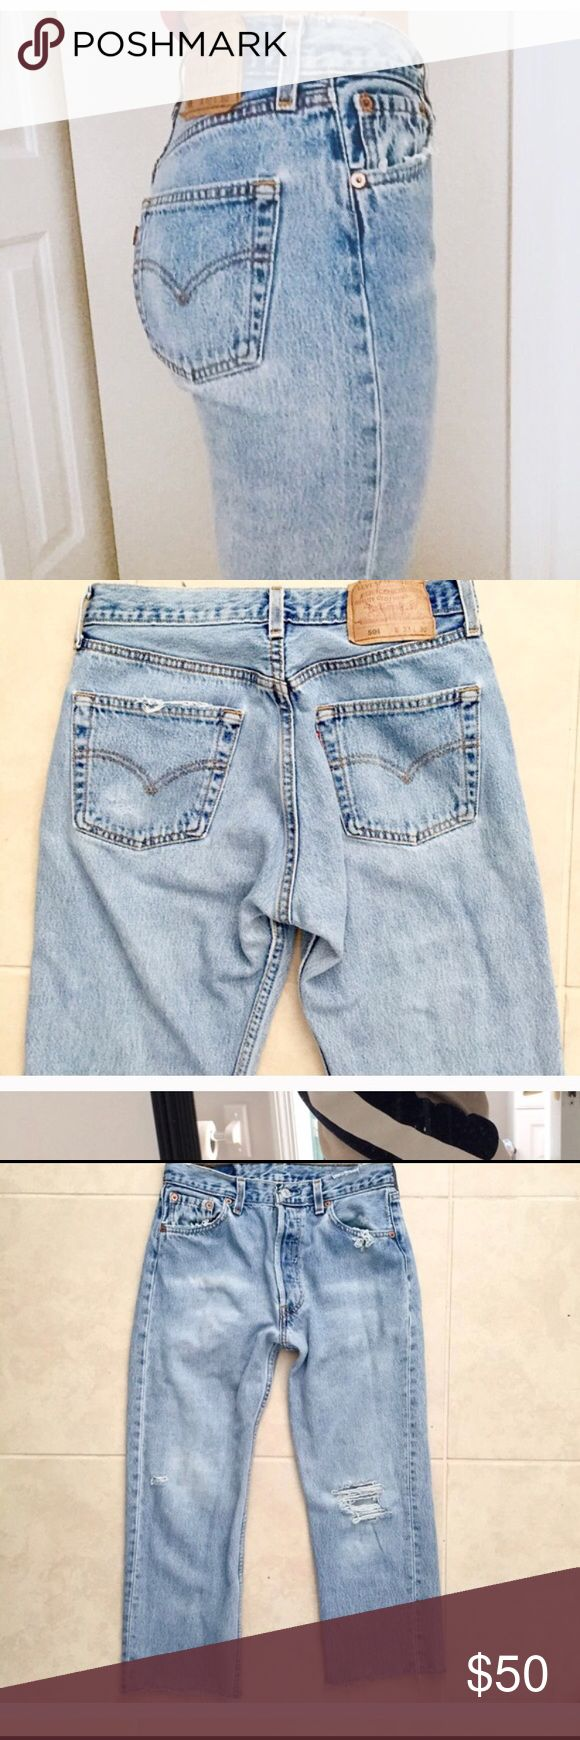 Trendy Vintage Levi's 501 jeans *SALE* Please measure yourself accordingly. Vintage Levi's fit differently.   Tag reads W33 L30  ACTUAL MEASUREMENTS: - waist 14 in. Flat across  - 10 in. Rise  - 23 in. inseam -(approx) 17in. Across the hips Levi's Jeans Ankle & Cropped